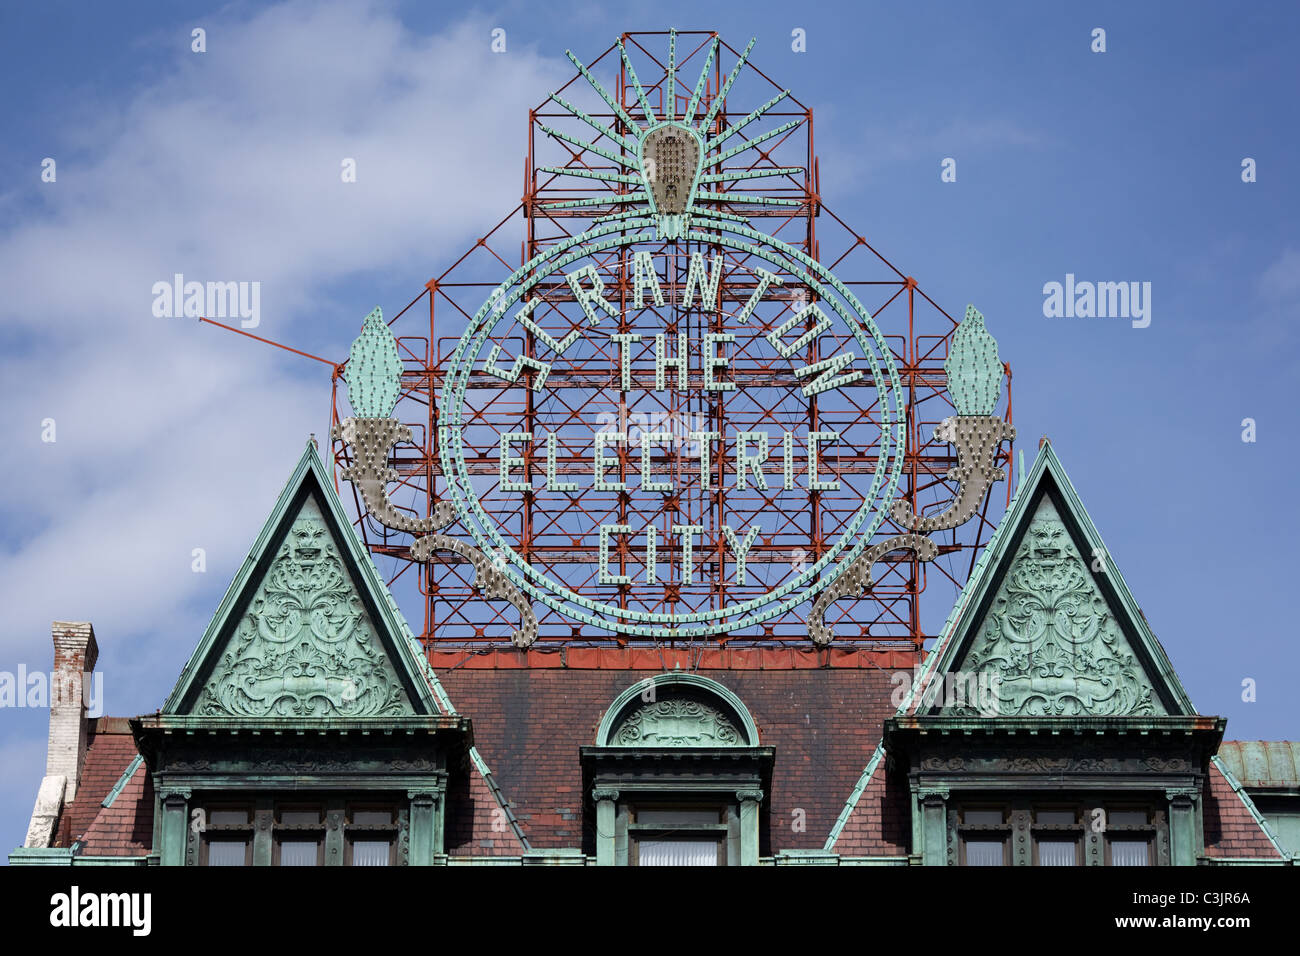 Historic electric city sign scranton pennsylvania